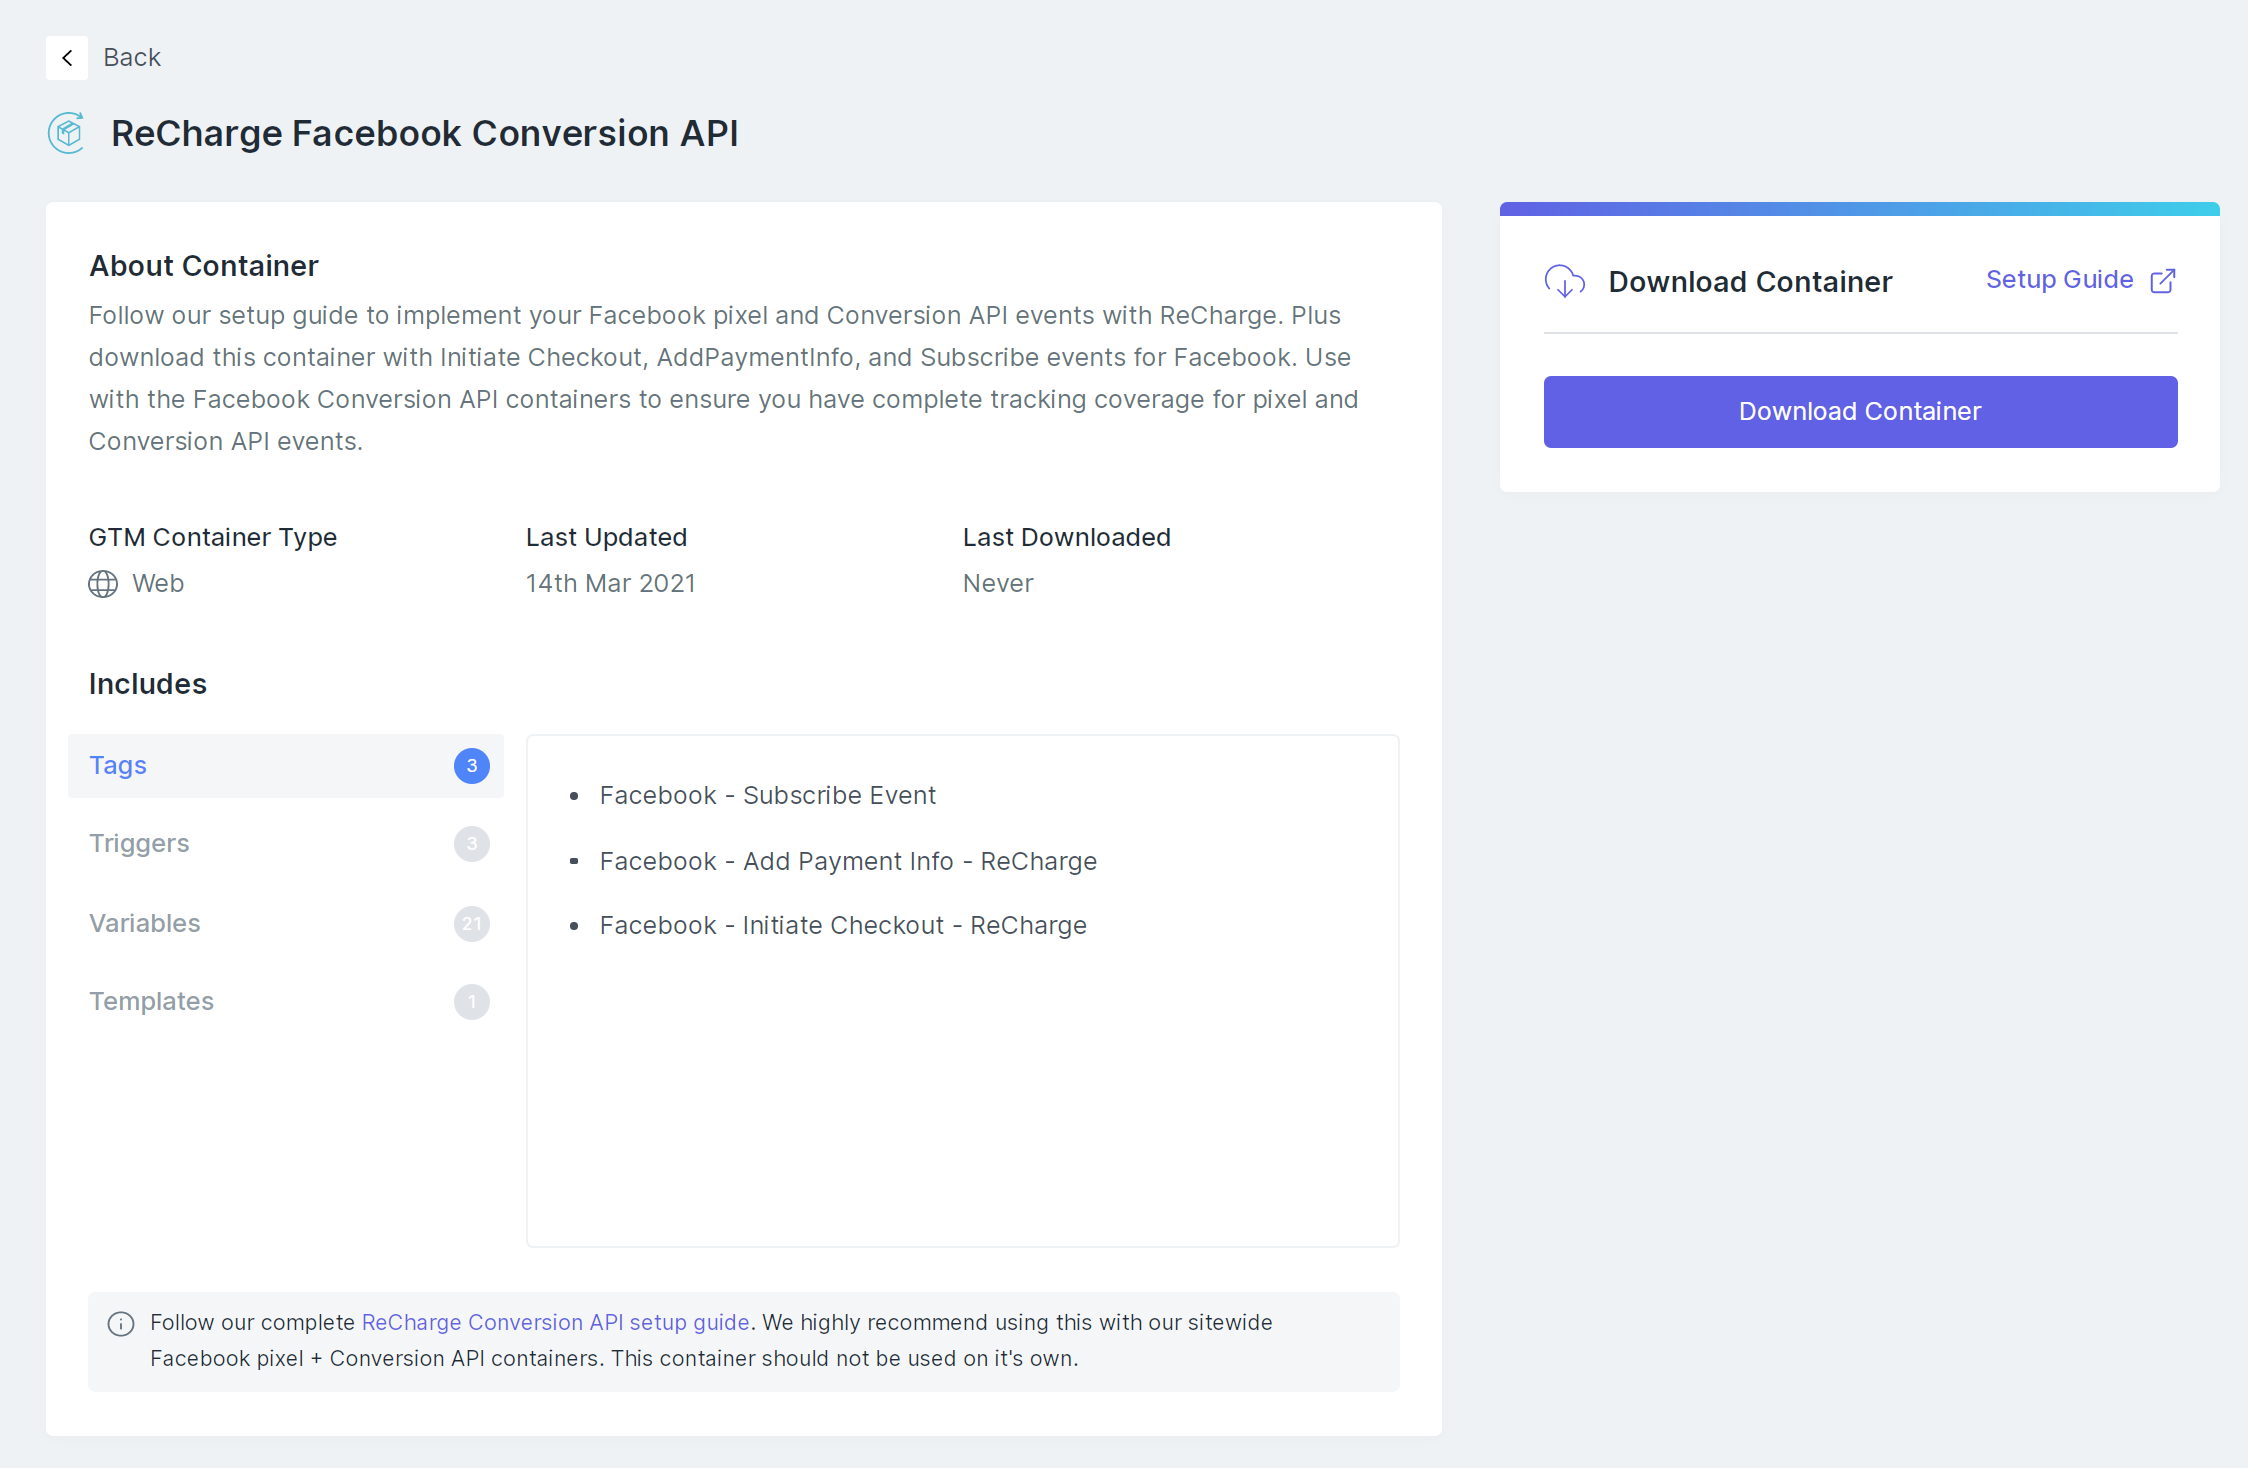 recharge-facebook-conversion-api-elevar